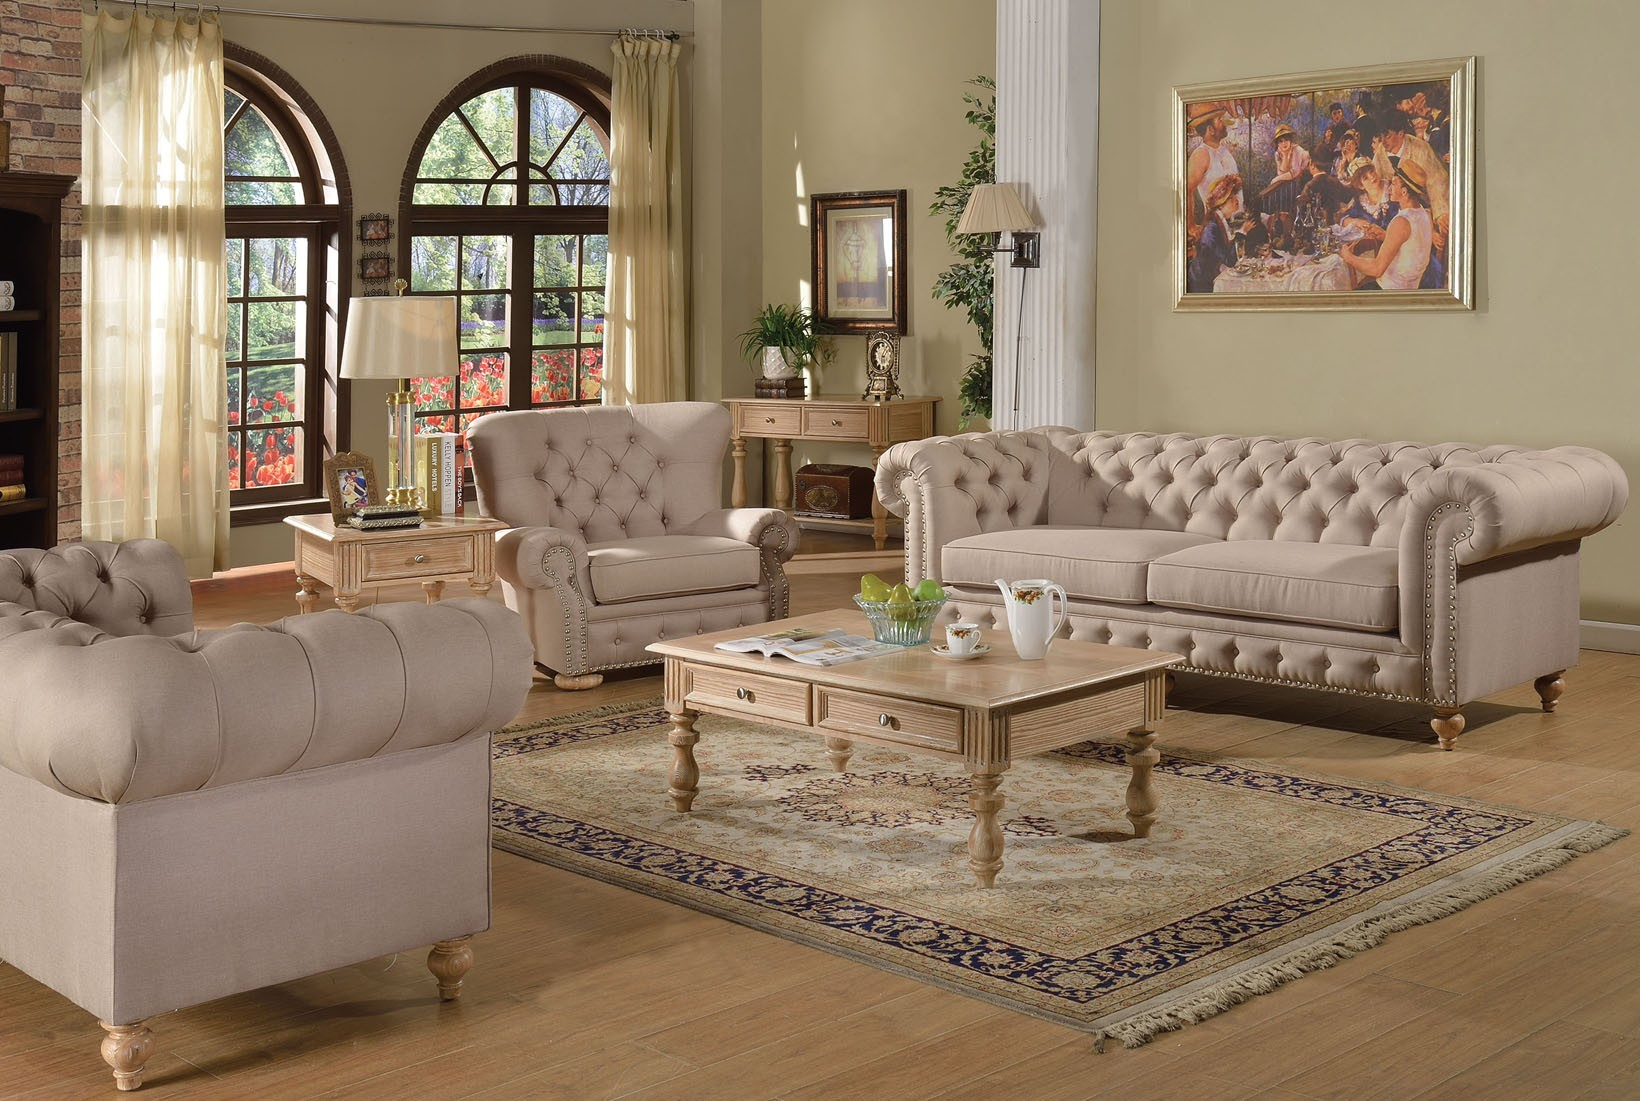 Watch living rooms from hgtv purple formal living room 03:08 purple formal living room 03:08 soft purple tones make sarah's enlarged living room formal but not fussy. 3pc Sofa Set Beige Fabric Traditional Living Room | Hot ...